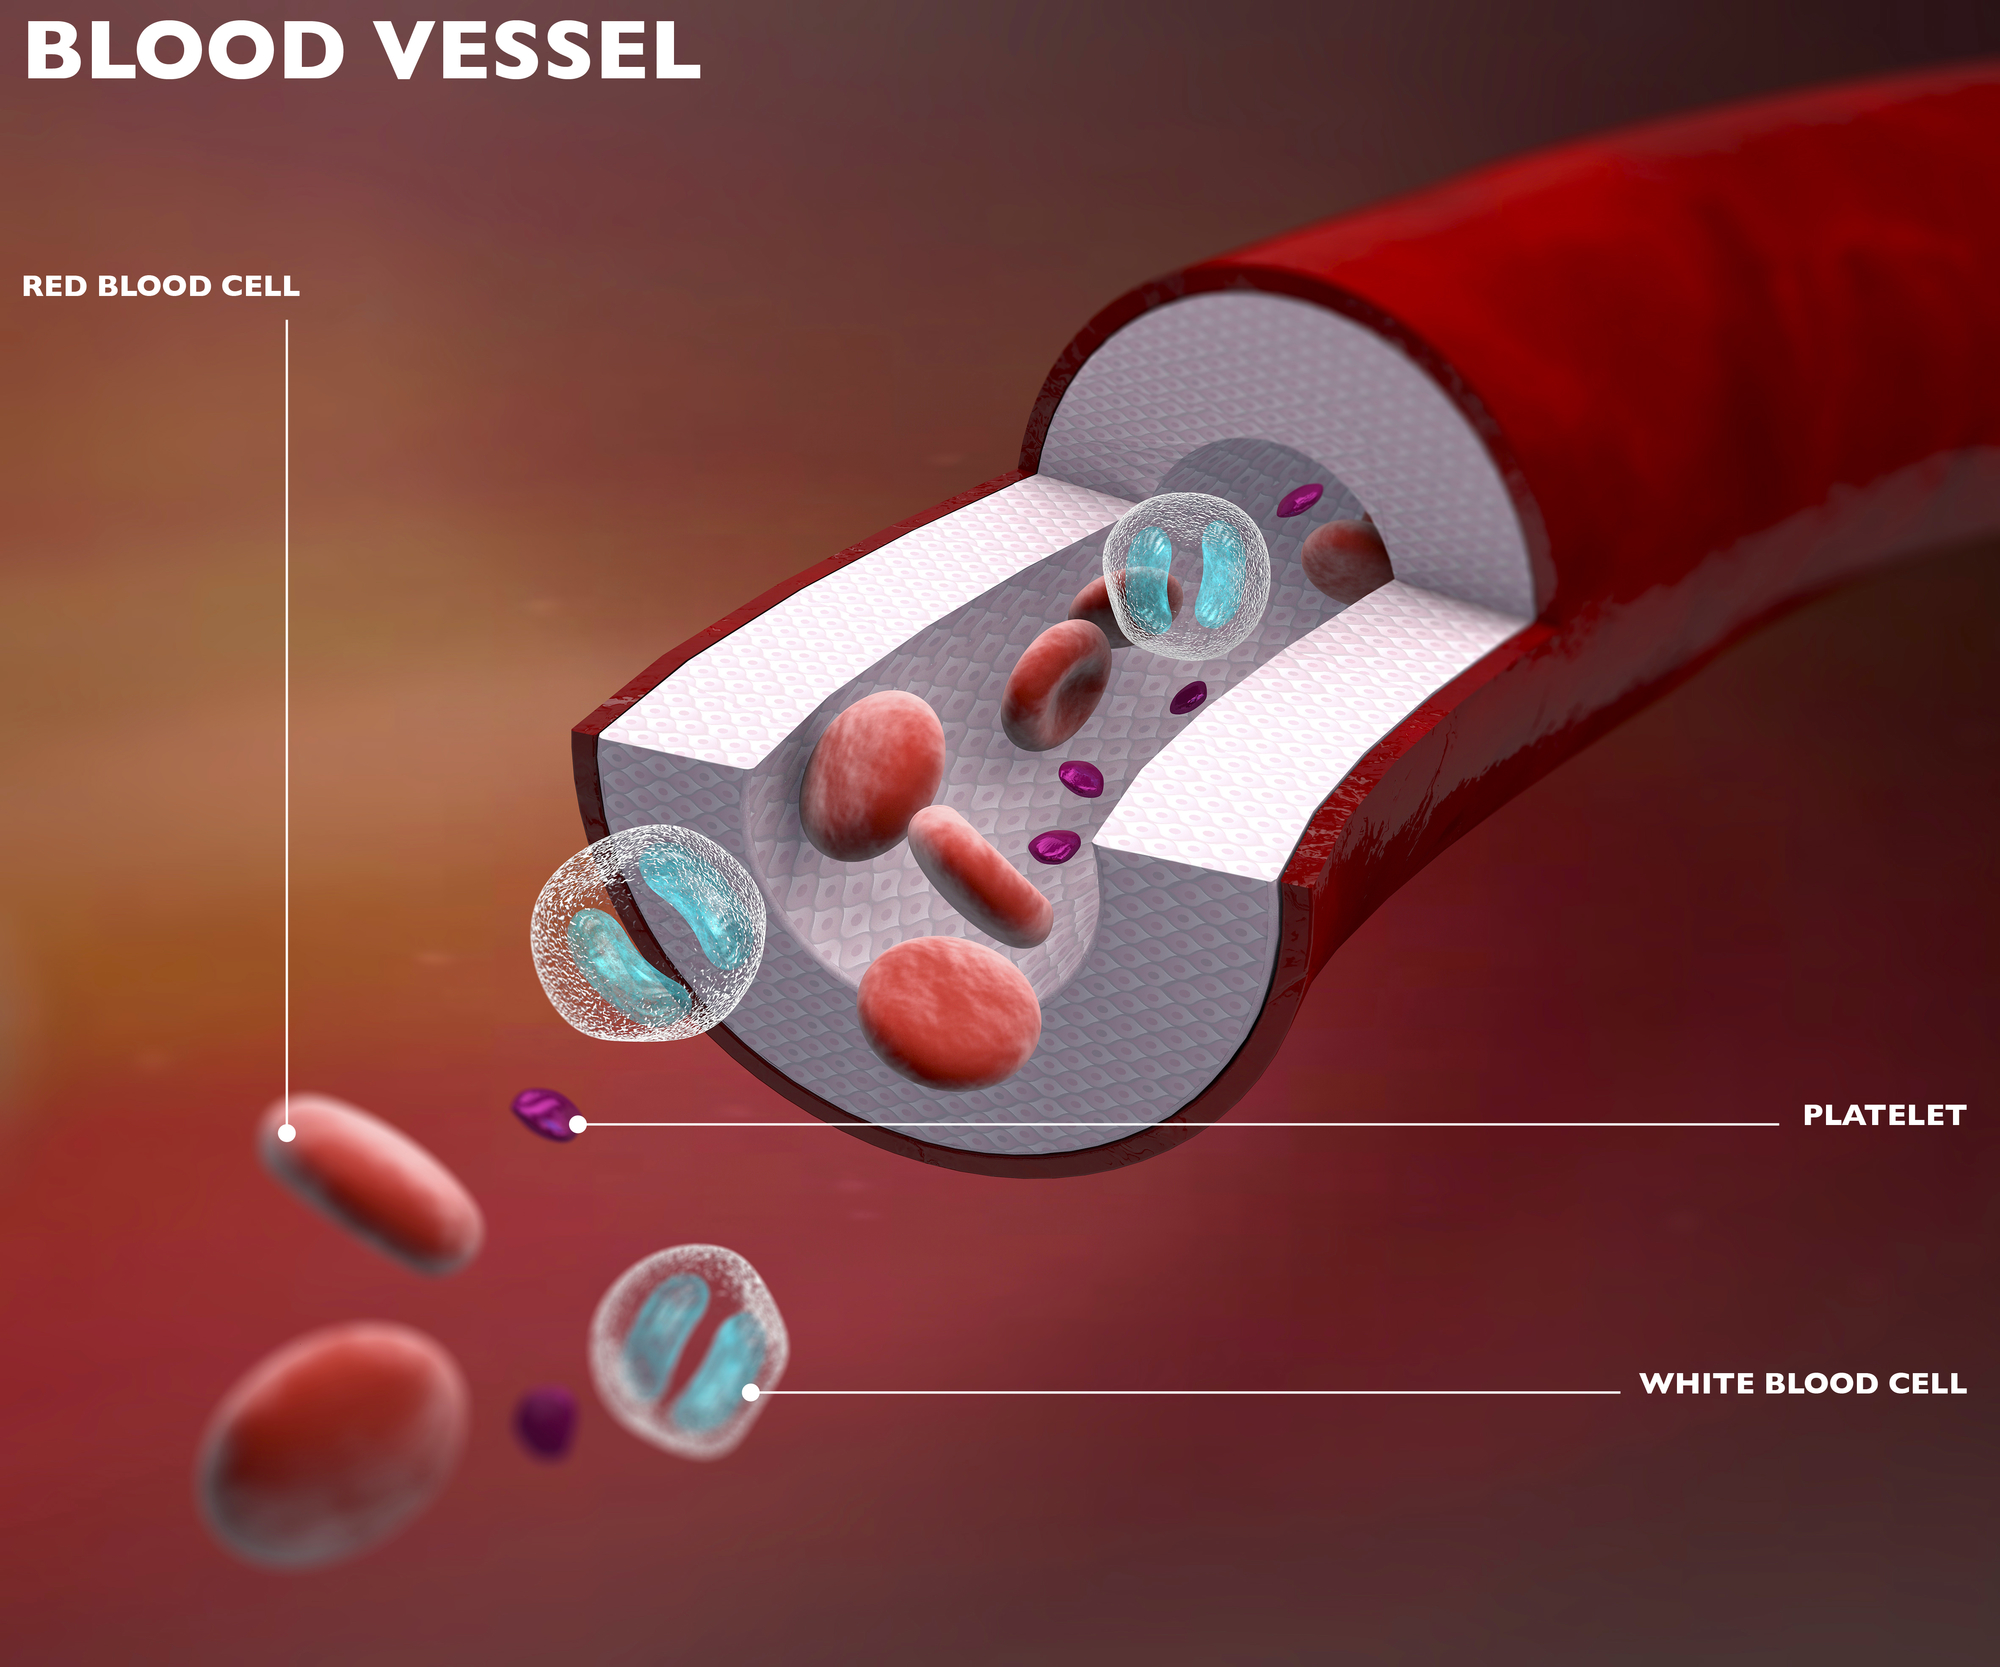 Diagram of a blood vessel.